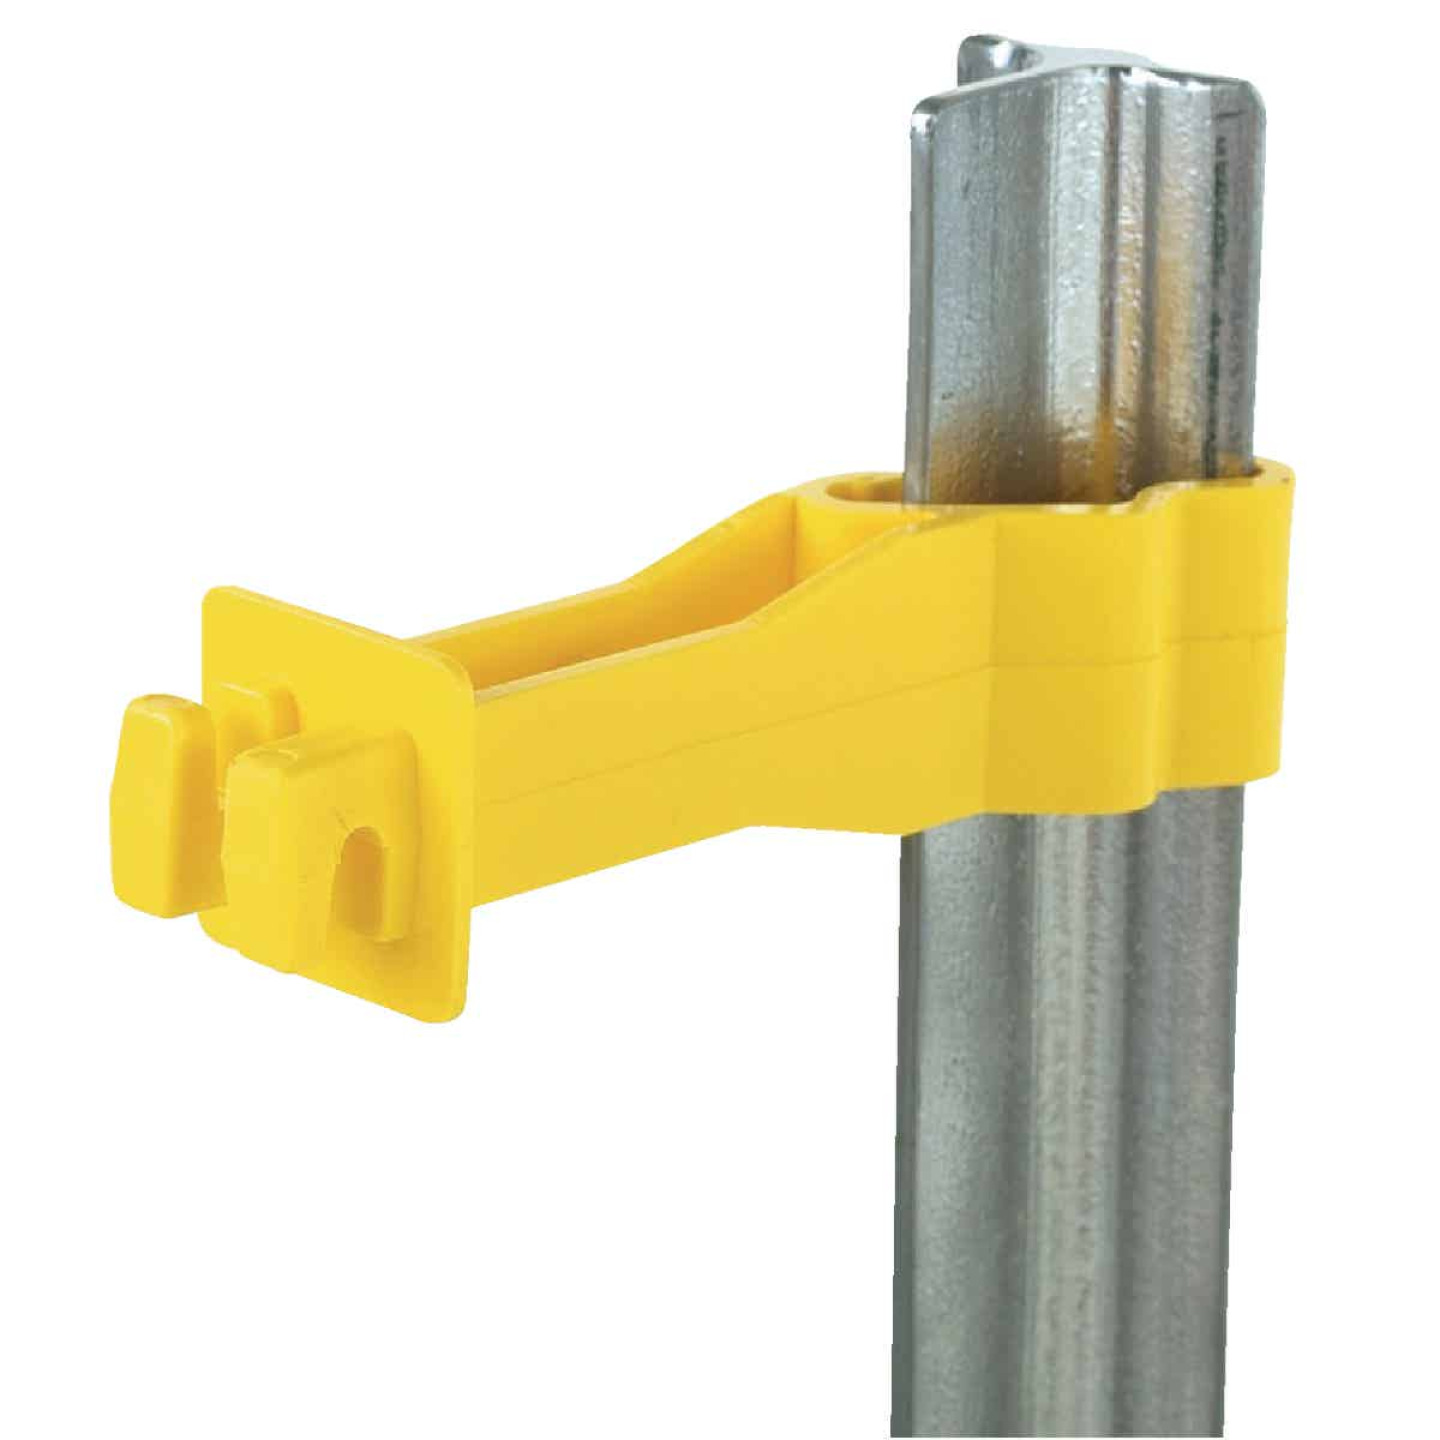 Dare Back Side, Snap-on Yellow Polyethylene Electric Fence Insulator (25-Pack) Image 1